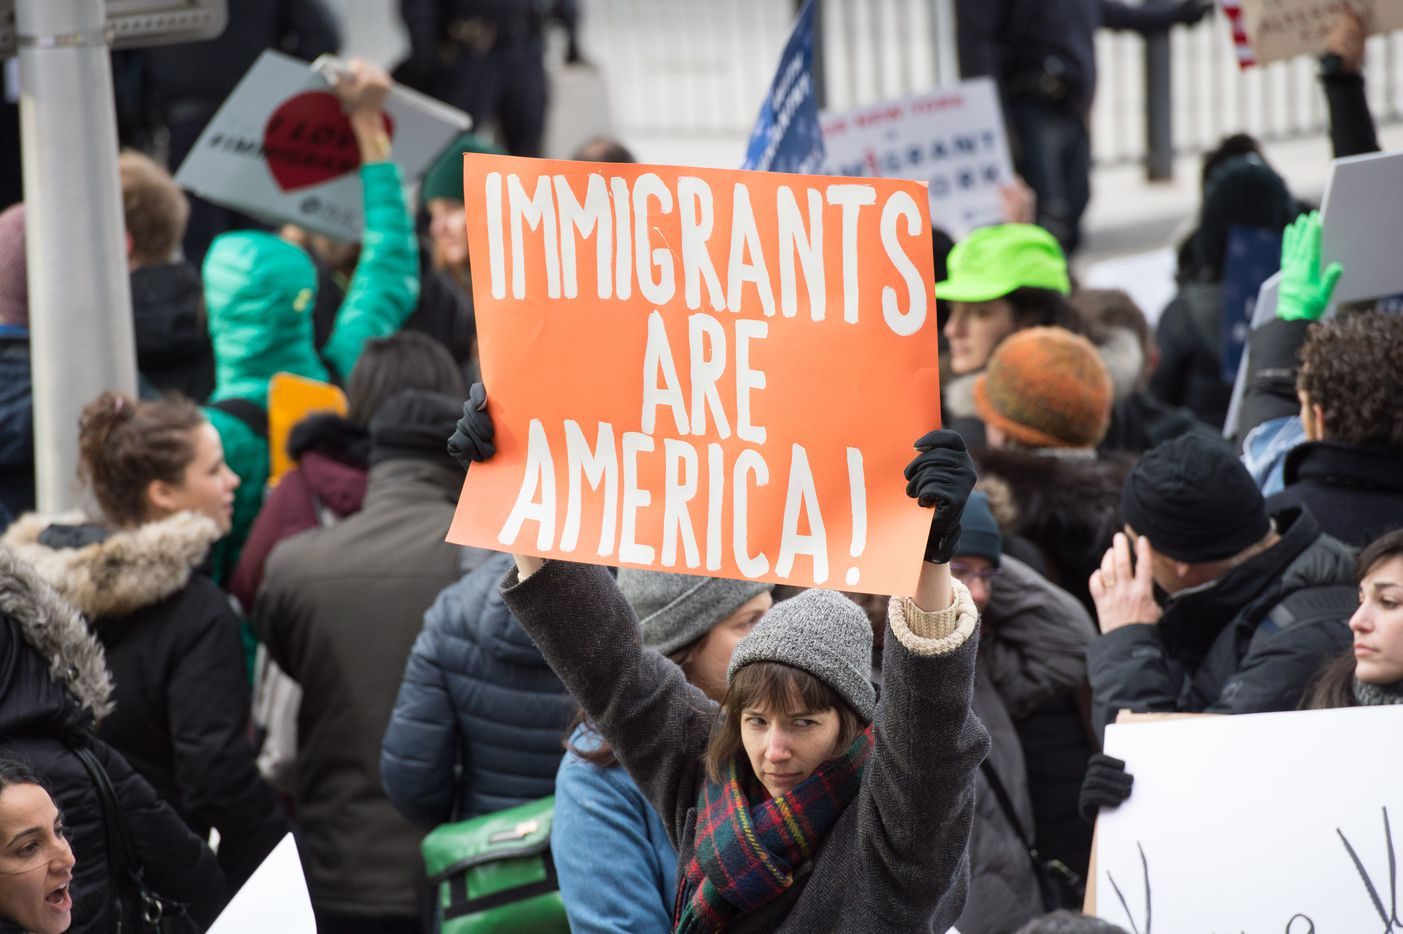 Protesters gather at JFK International Airport's Terminal 4 to demonstrate against President Donald Trump's executive order on January 28, 2017, in New York.